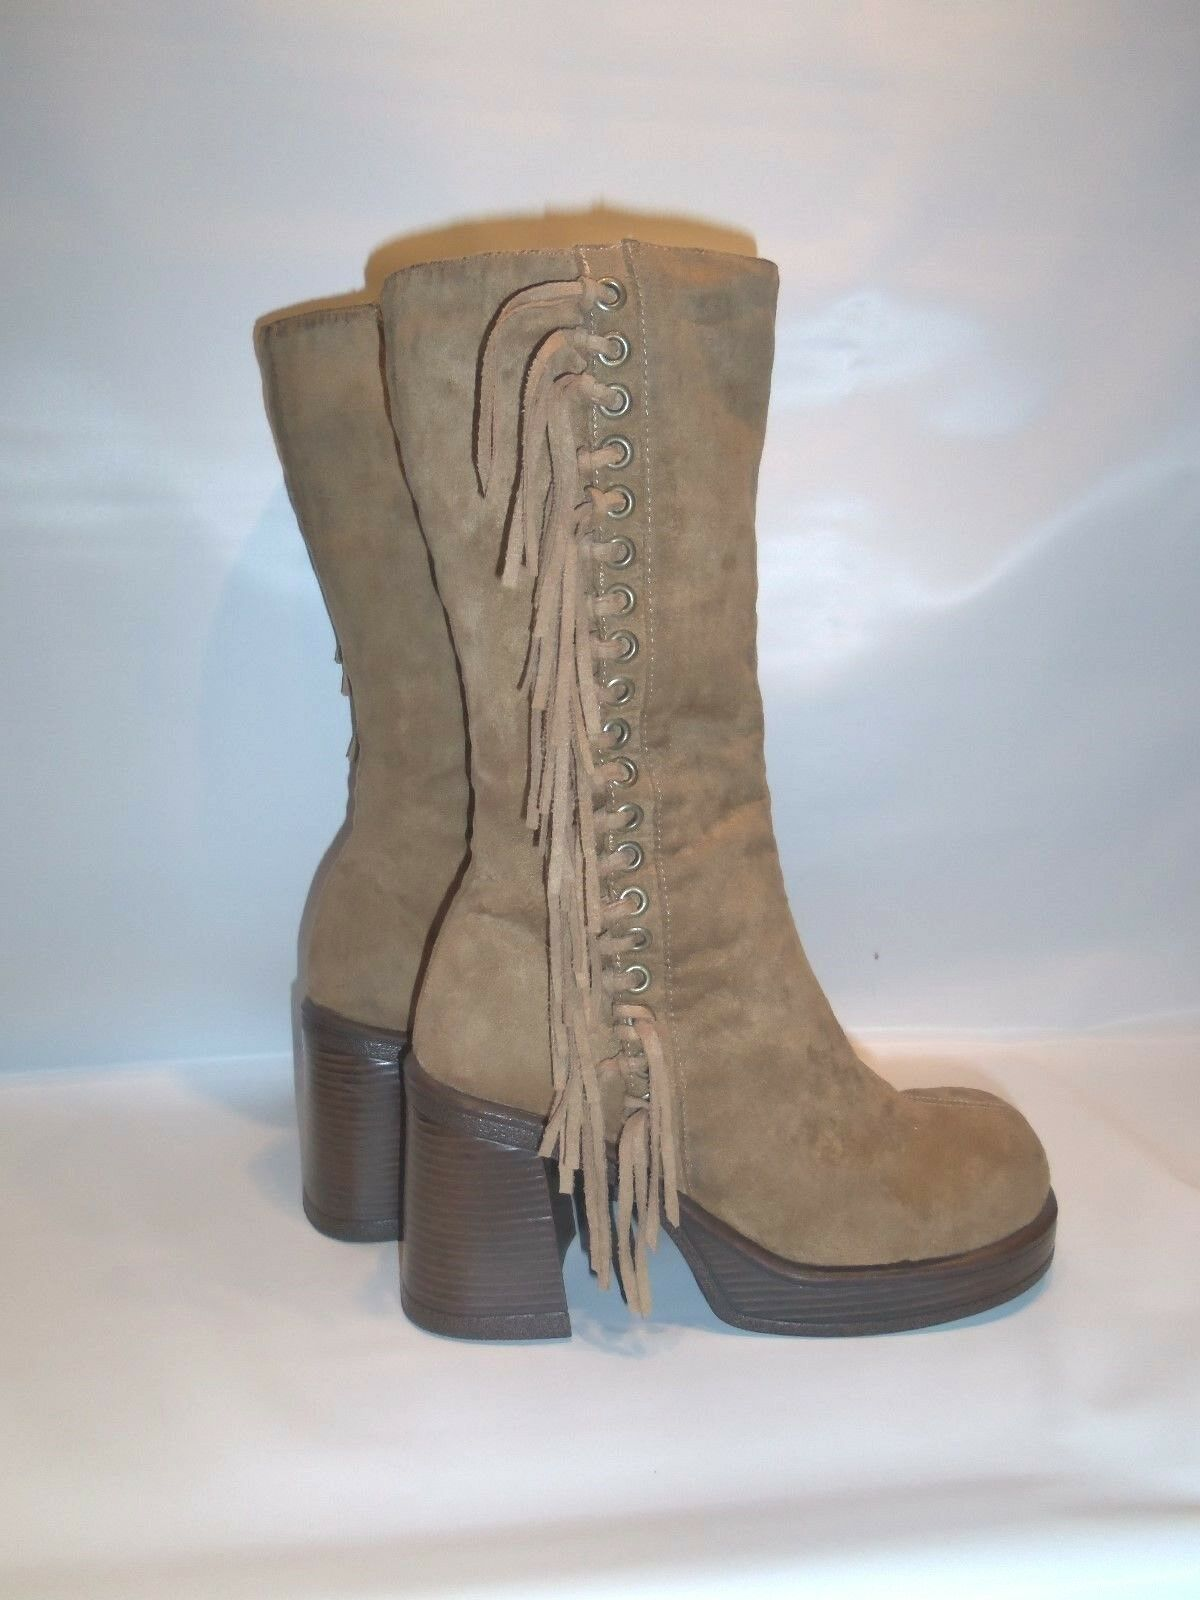 Vintage  SPASH   Women's Vegan Suede High Heel  Mid Calf Fringe Boot